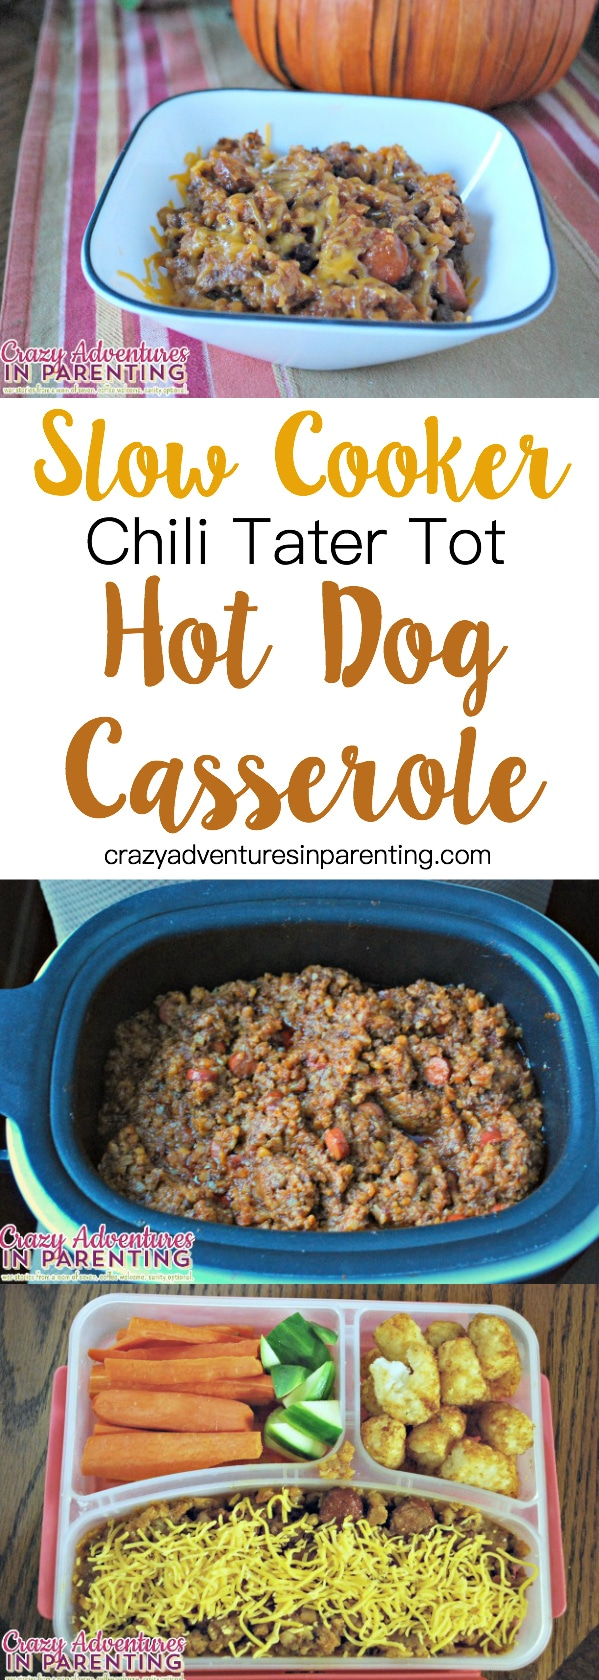 Slow Cooker Chili Tater Tot Hot Dog Casserole